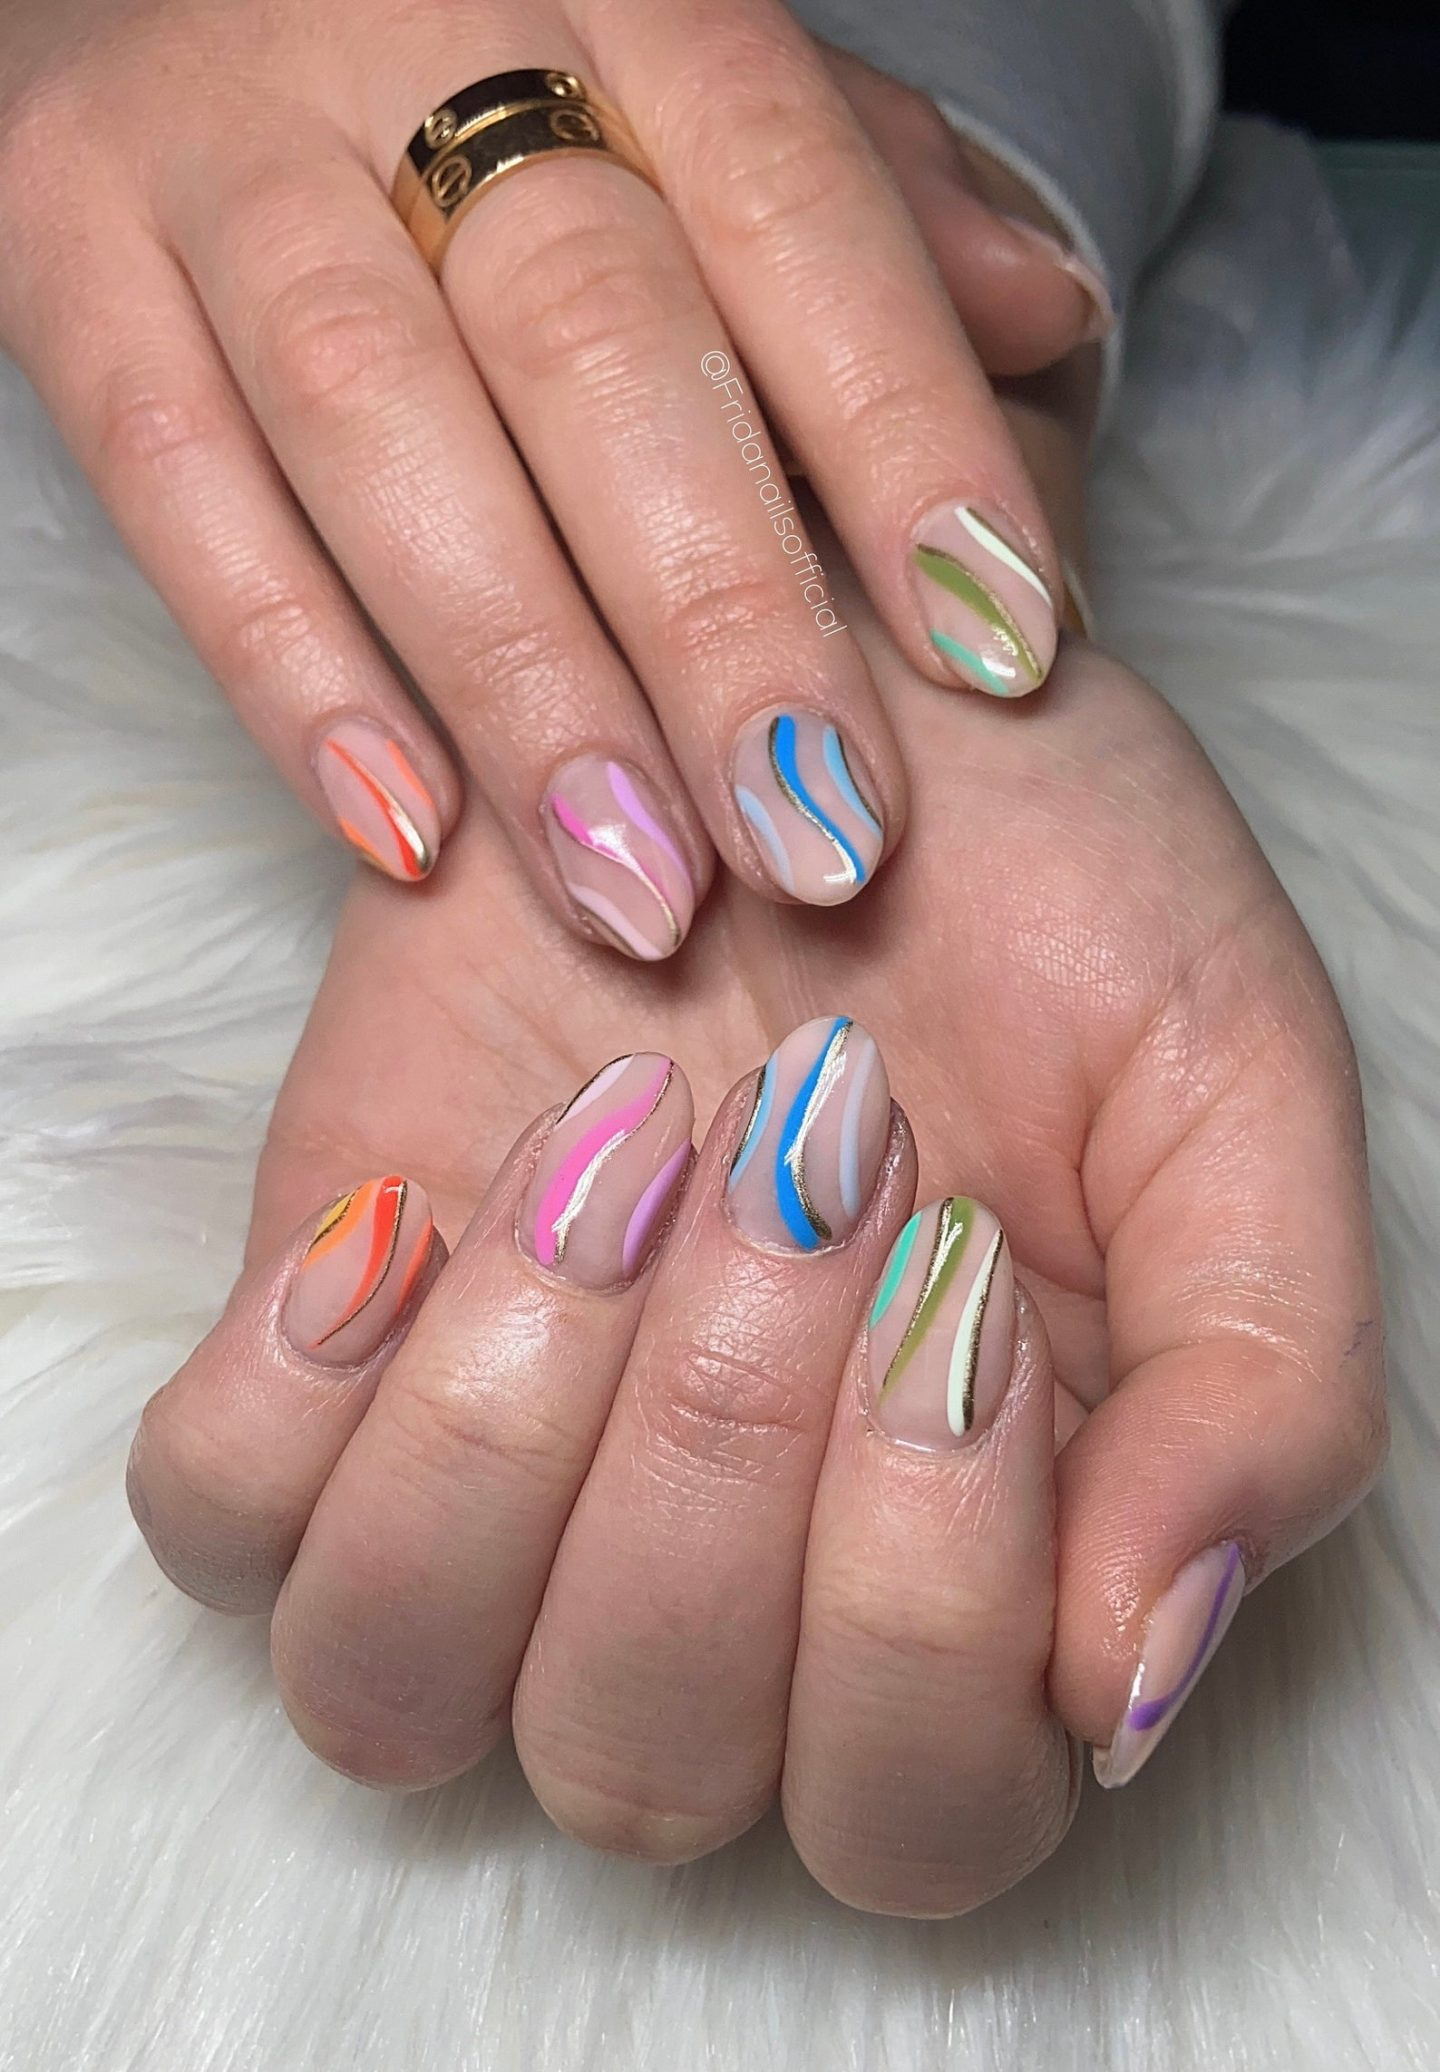 Cute pastel nails with abstract lines